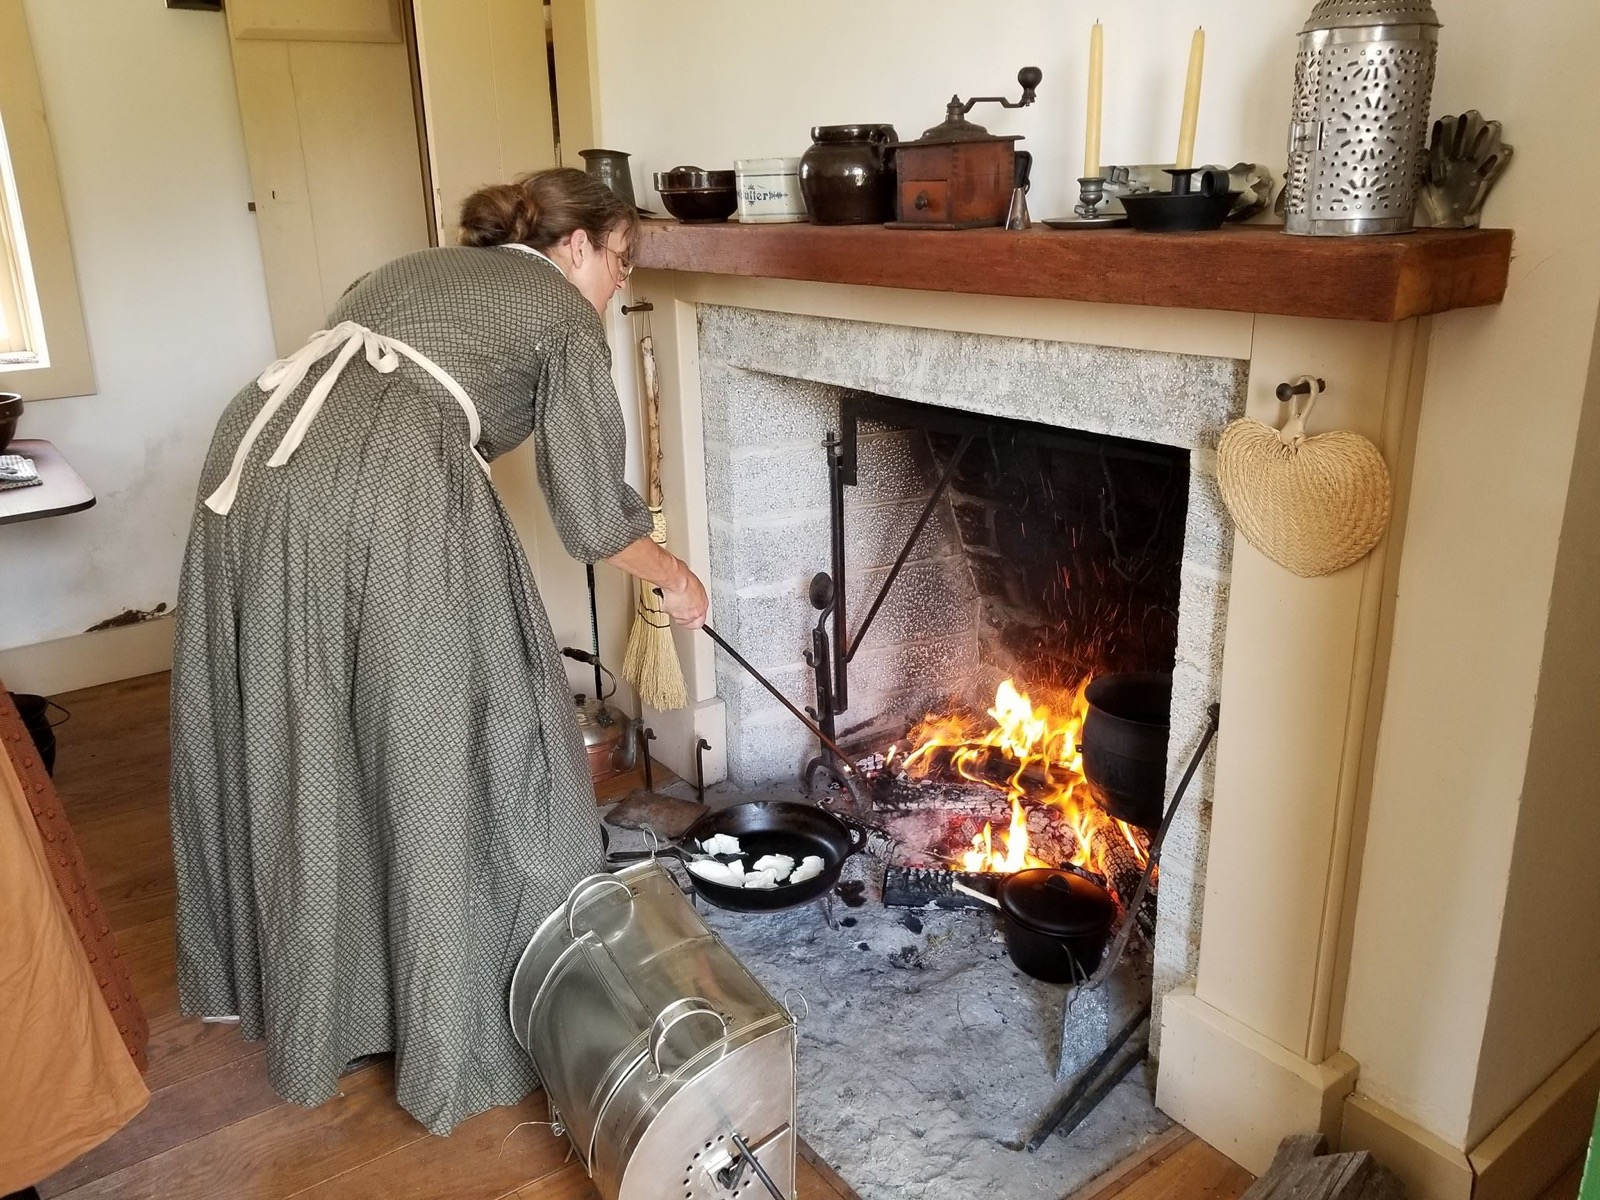 <p>At the Thiebaud Farmstead, a group of historical period actors will show you the ins and outs of life in 1843, including  quilting, spinning, sewing, and how to press 300 pounds of hay. You'll even see how folks back then did laundry, which is sure to give you a new appreciation for your washing machine. / Image courtesy of Switzerland County Historical Society // Published: 4.1.18</p>